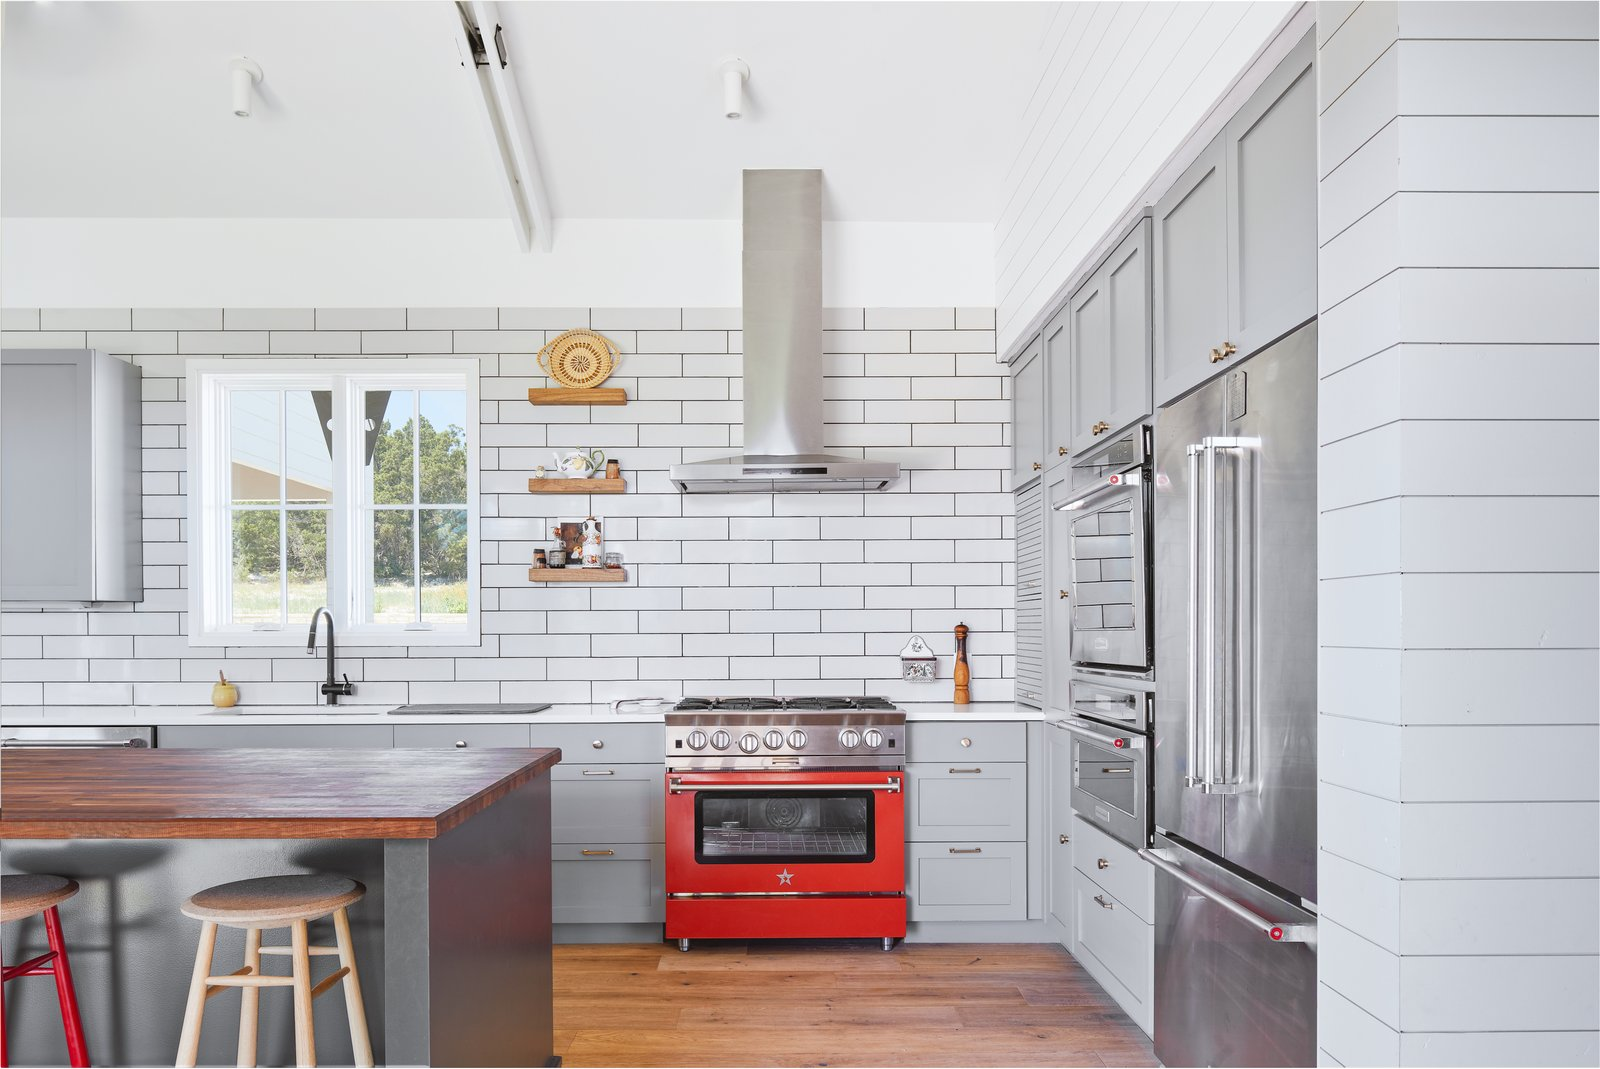 Kitchen, Wall Oven, Refrigerator, Wood, Range Hood, Range, Microwave, Quartzite, Wood, Medium Hardwood, Ceiling, Undermount, and Subway Tile The splash of red repeats itself in the kitchen oven.  Best Kitchen Wood Quartzite Range Undermount Photos from Interior Spaces